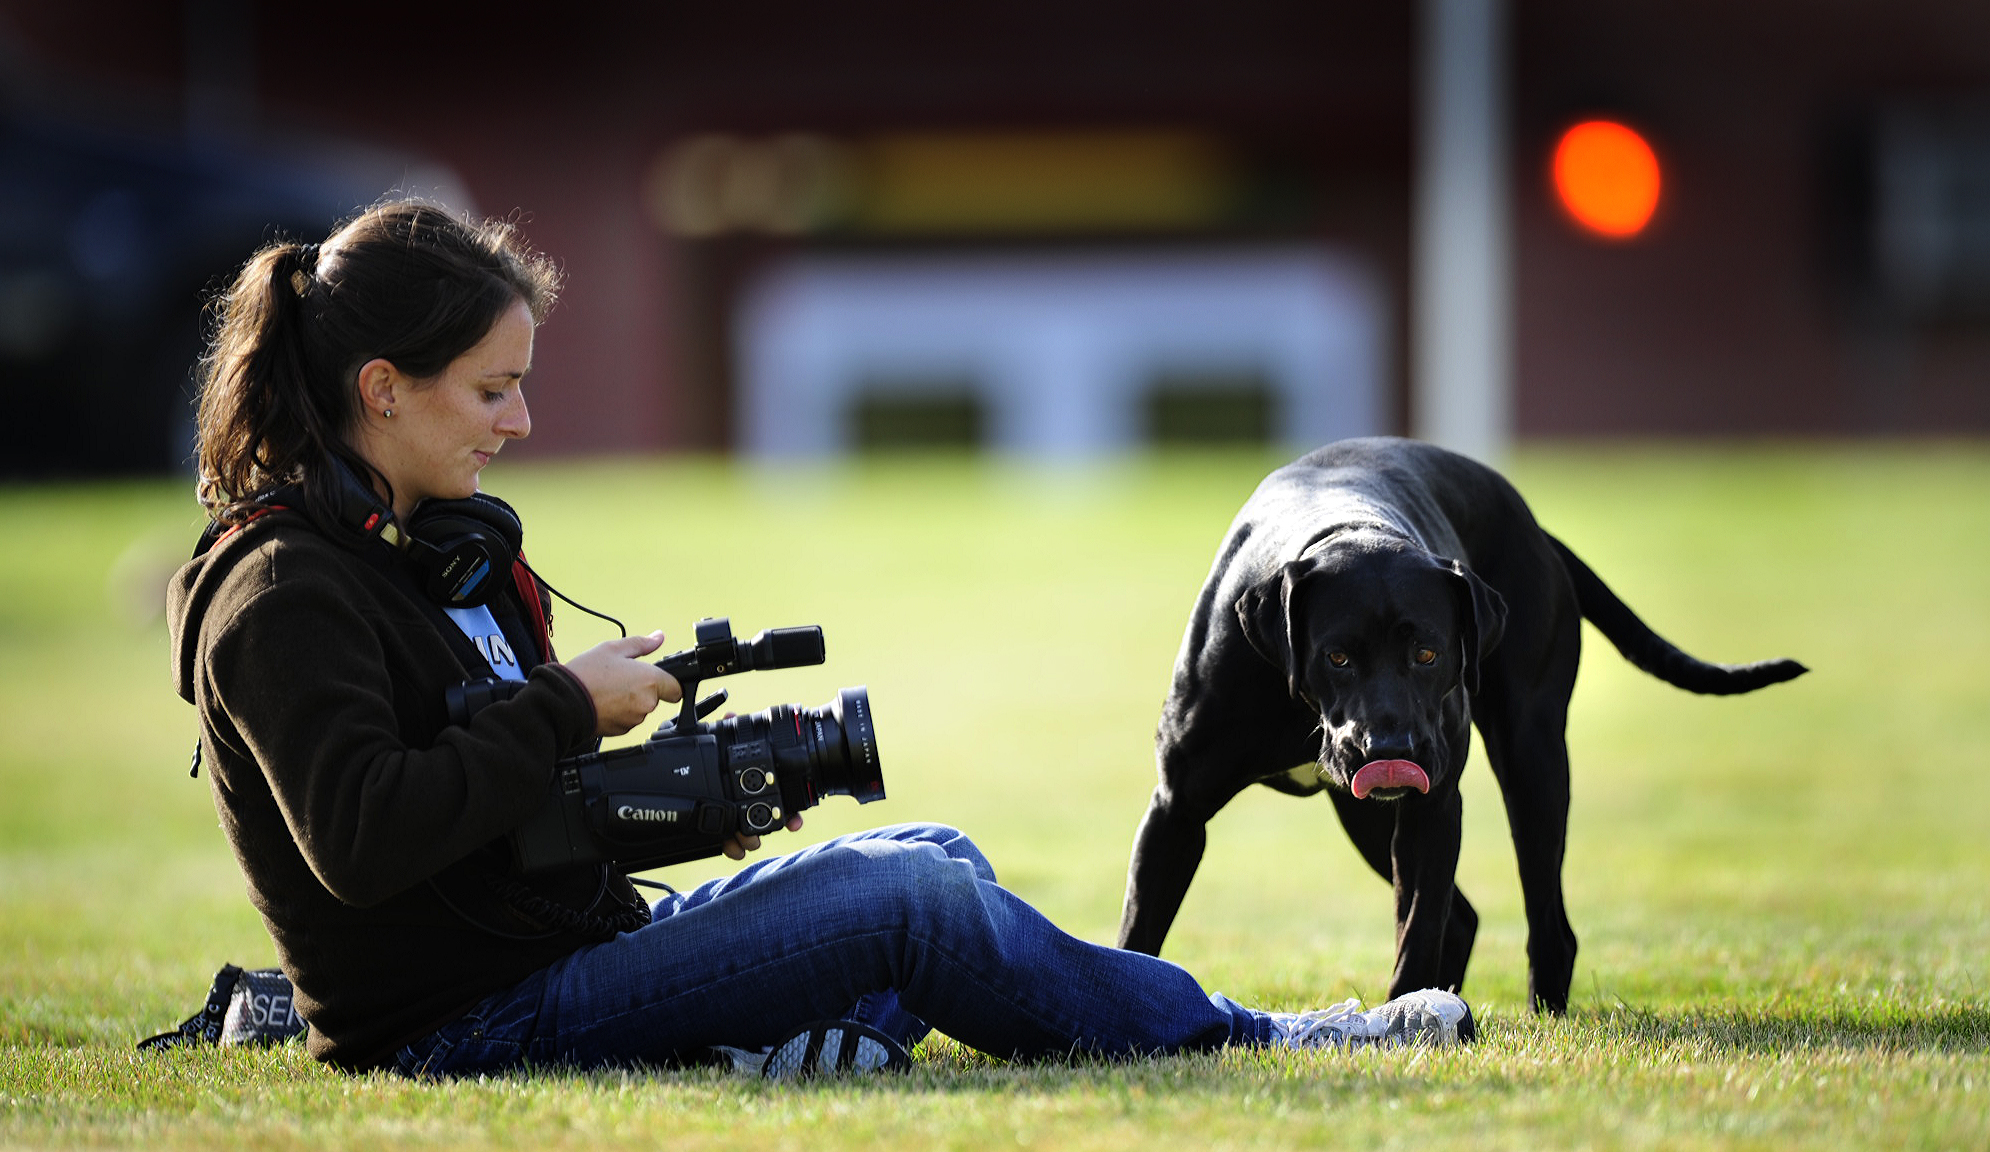 Learning how to shoot video on the fly with the Arthur wolves team dog (in my experience, every small town in Nebraska has a dog at practice).